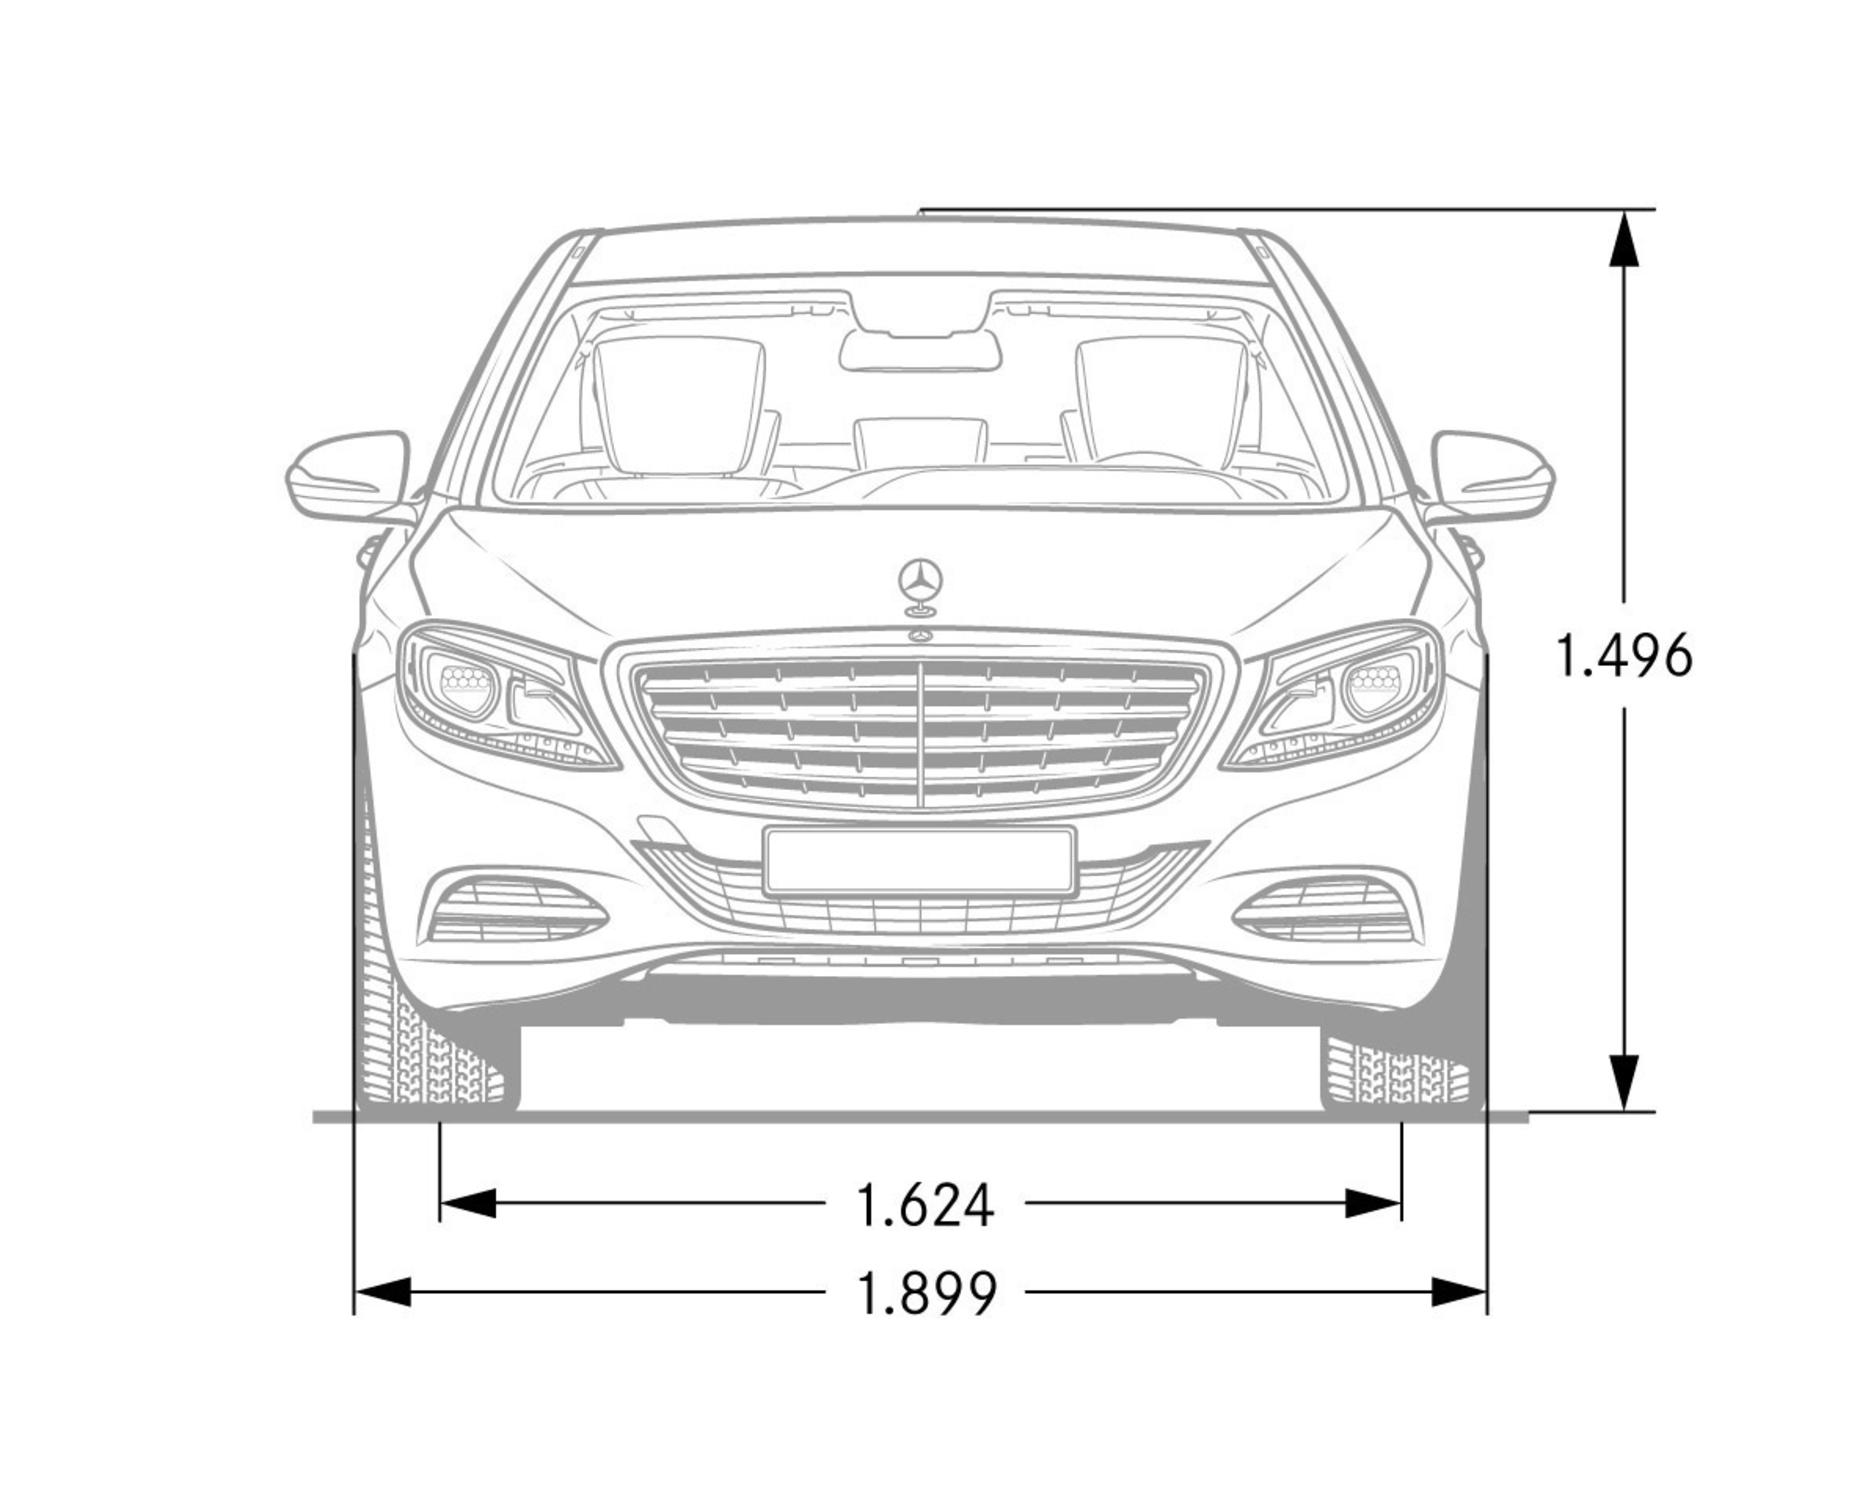 Mercedes Benz S Class Model Range